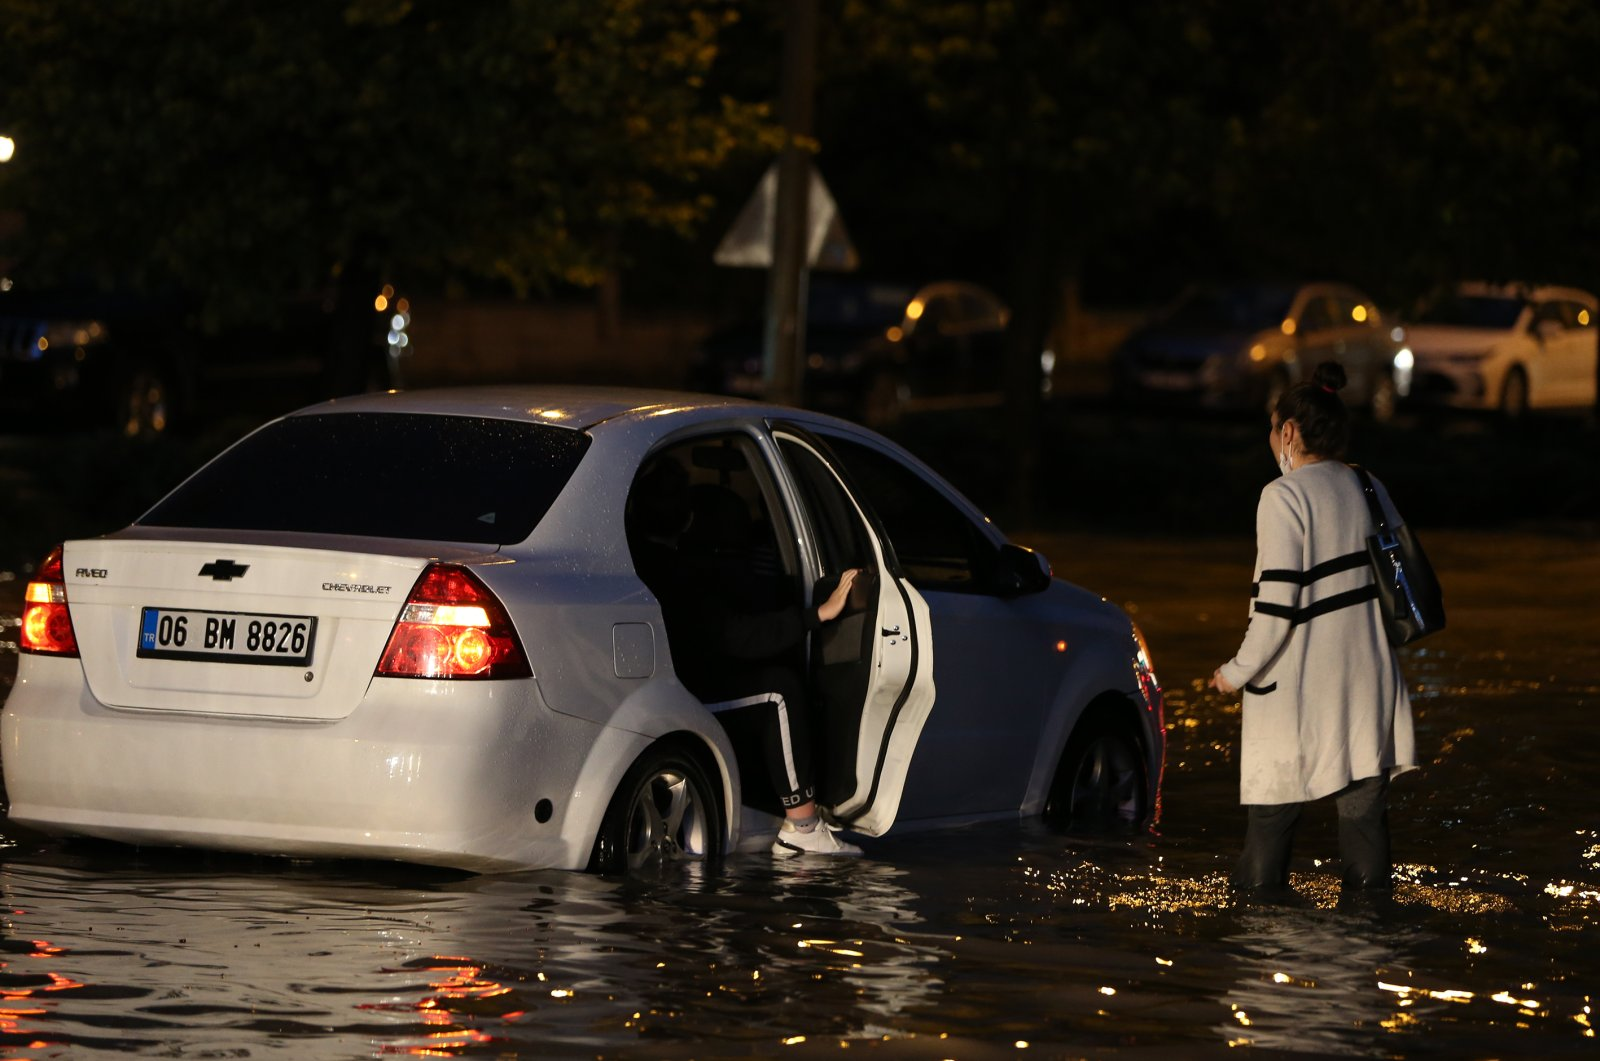 A woman walks in knee-high water as she tries to get inside a car, Ankara, Turkey, June 5, 2020. (AA Photo)